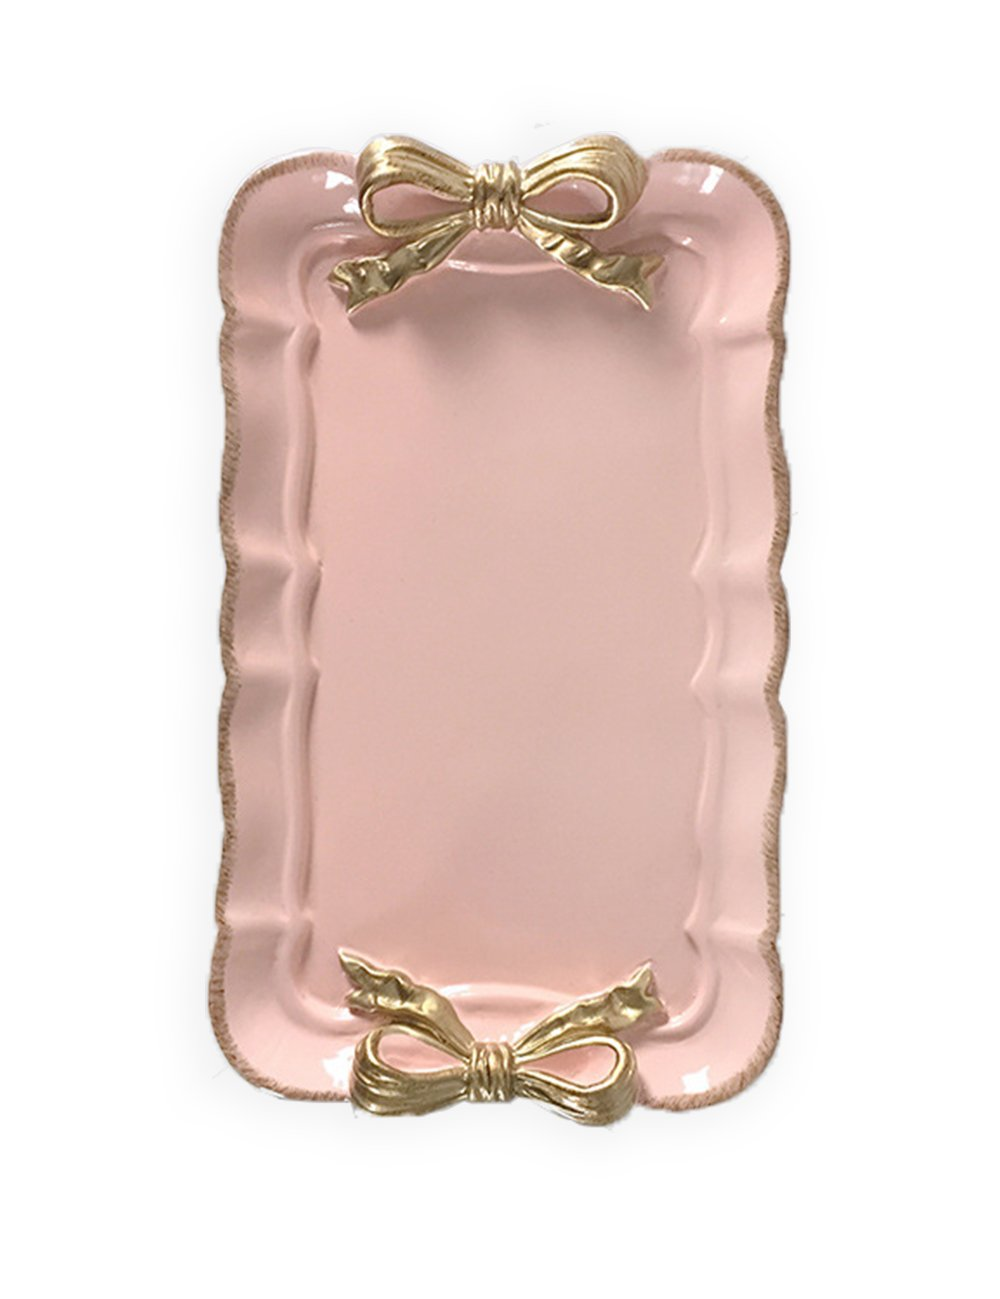 What's Fun Retro Rectangle Butterfly Bowknot Decorative Tray Plate for Dessert/Cake/Cafe/Home Décor (Pink)